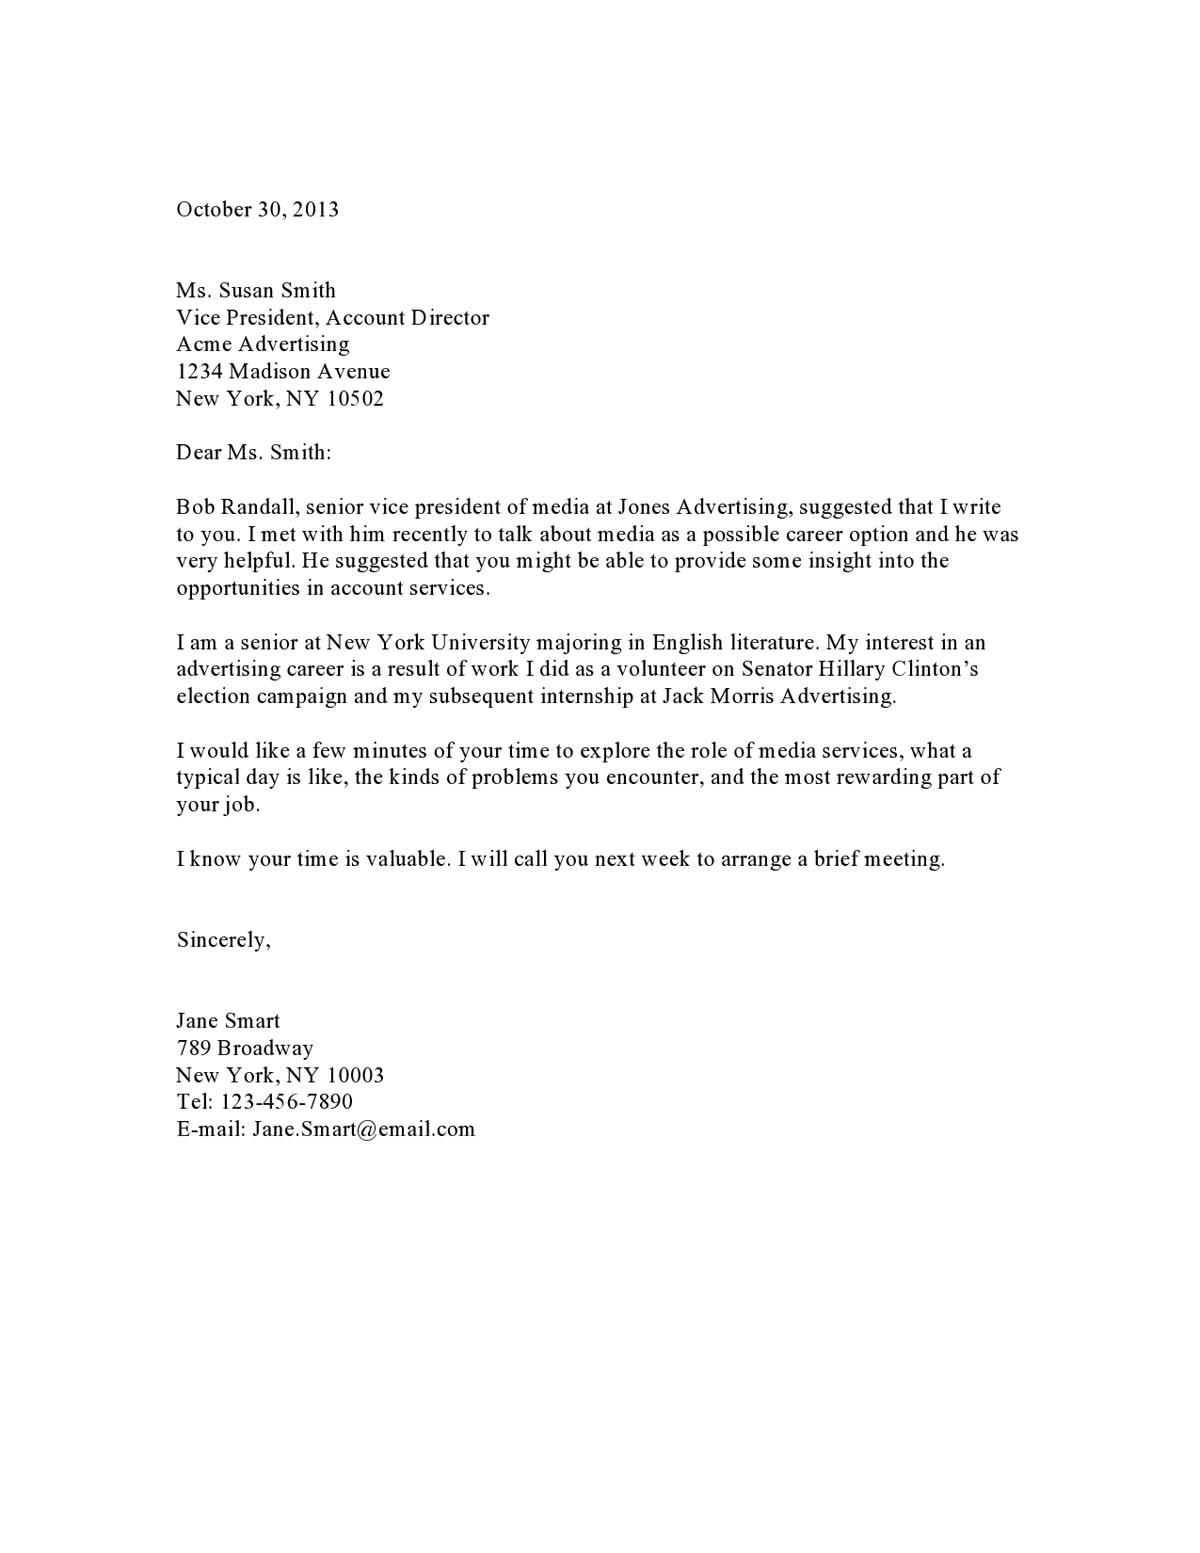 Sample cover letter for applying a job for Sample cover letter for online teaching position